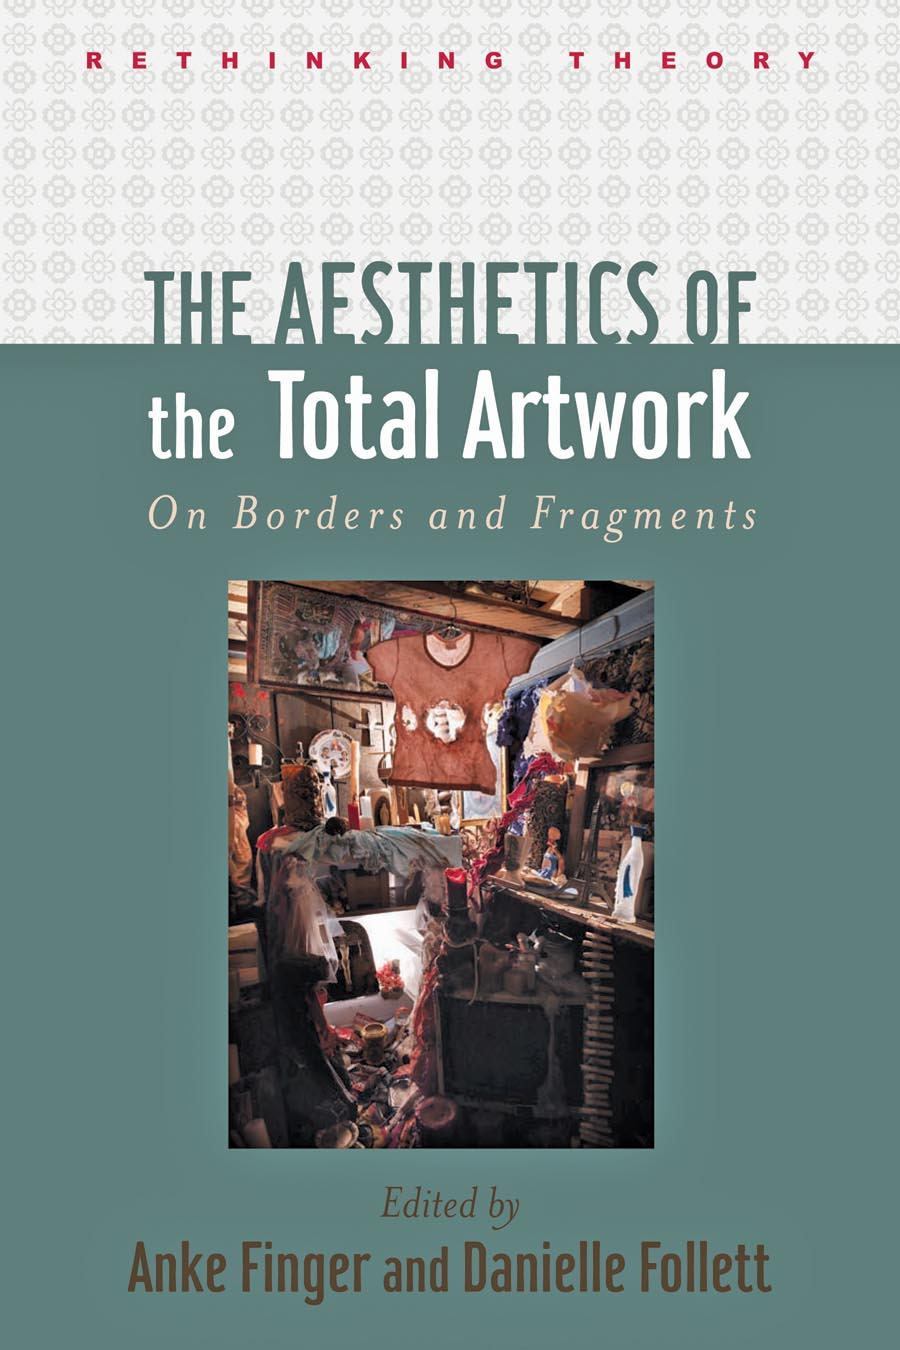 The Aesthetics of the Total Artwork – On Borders and Fragments borders